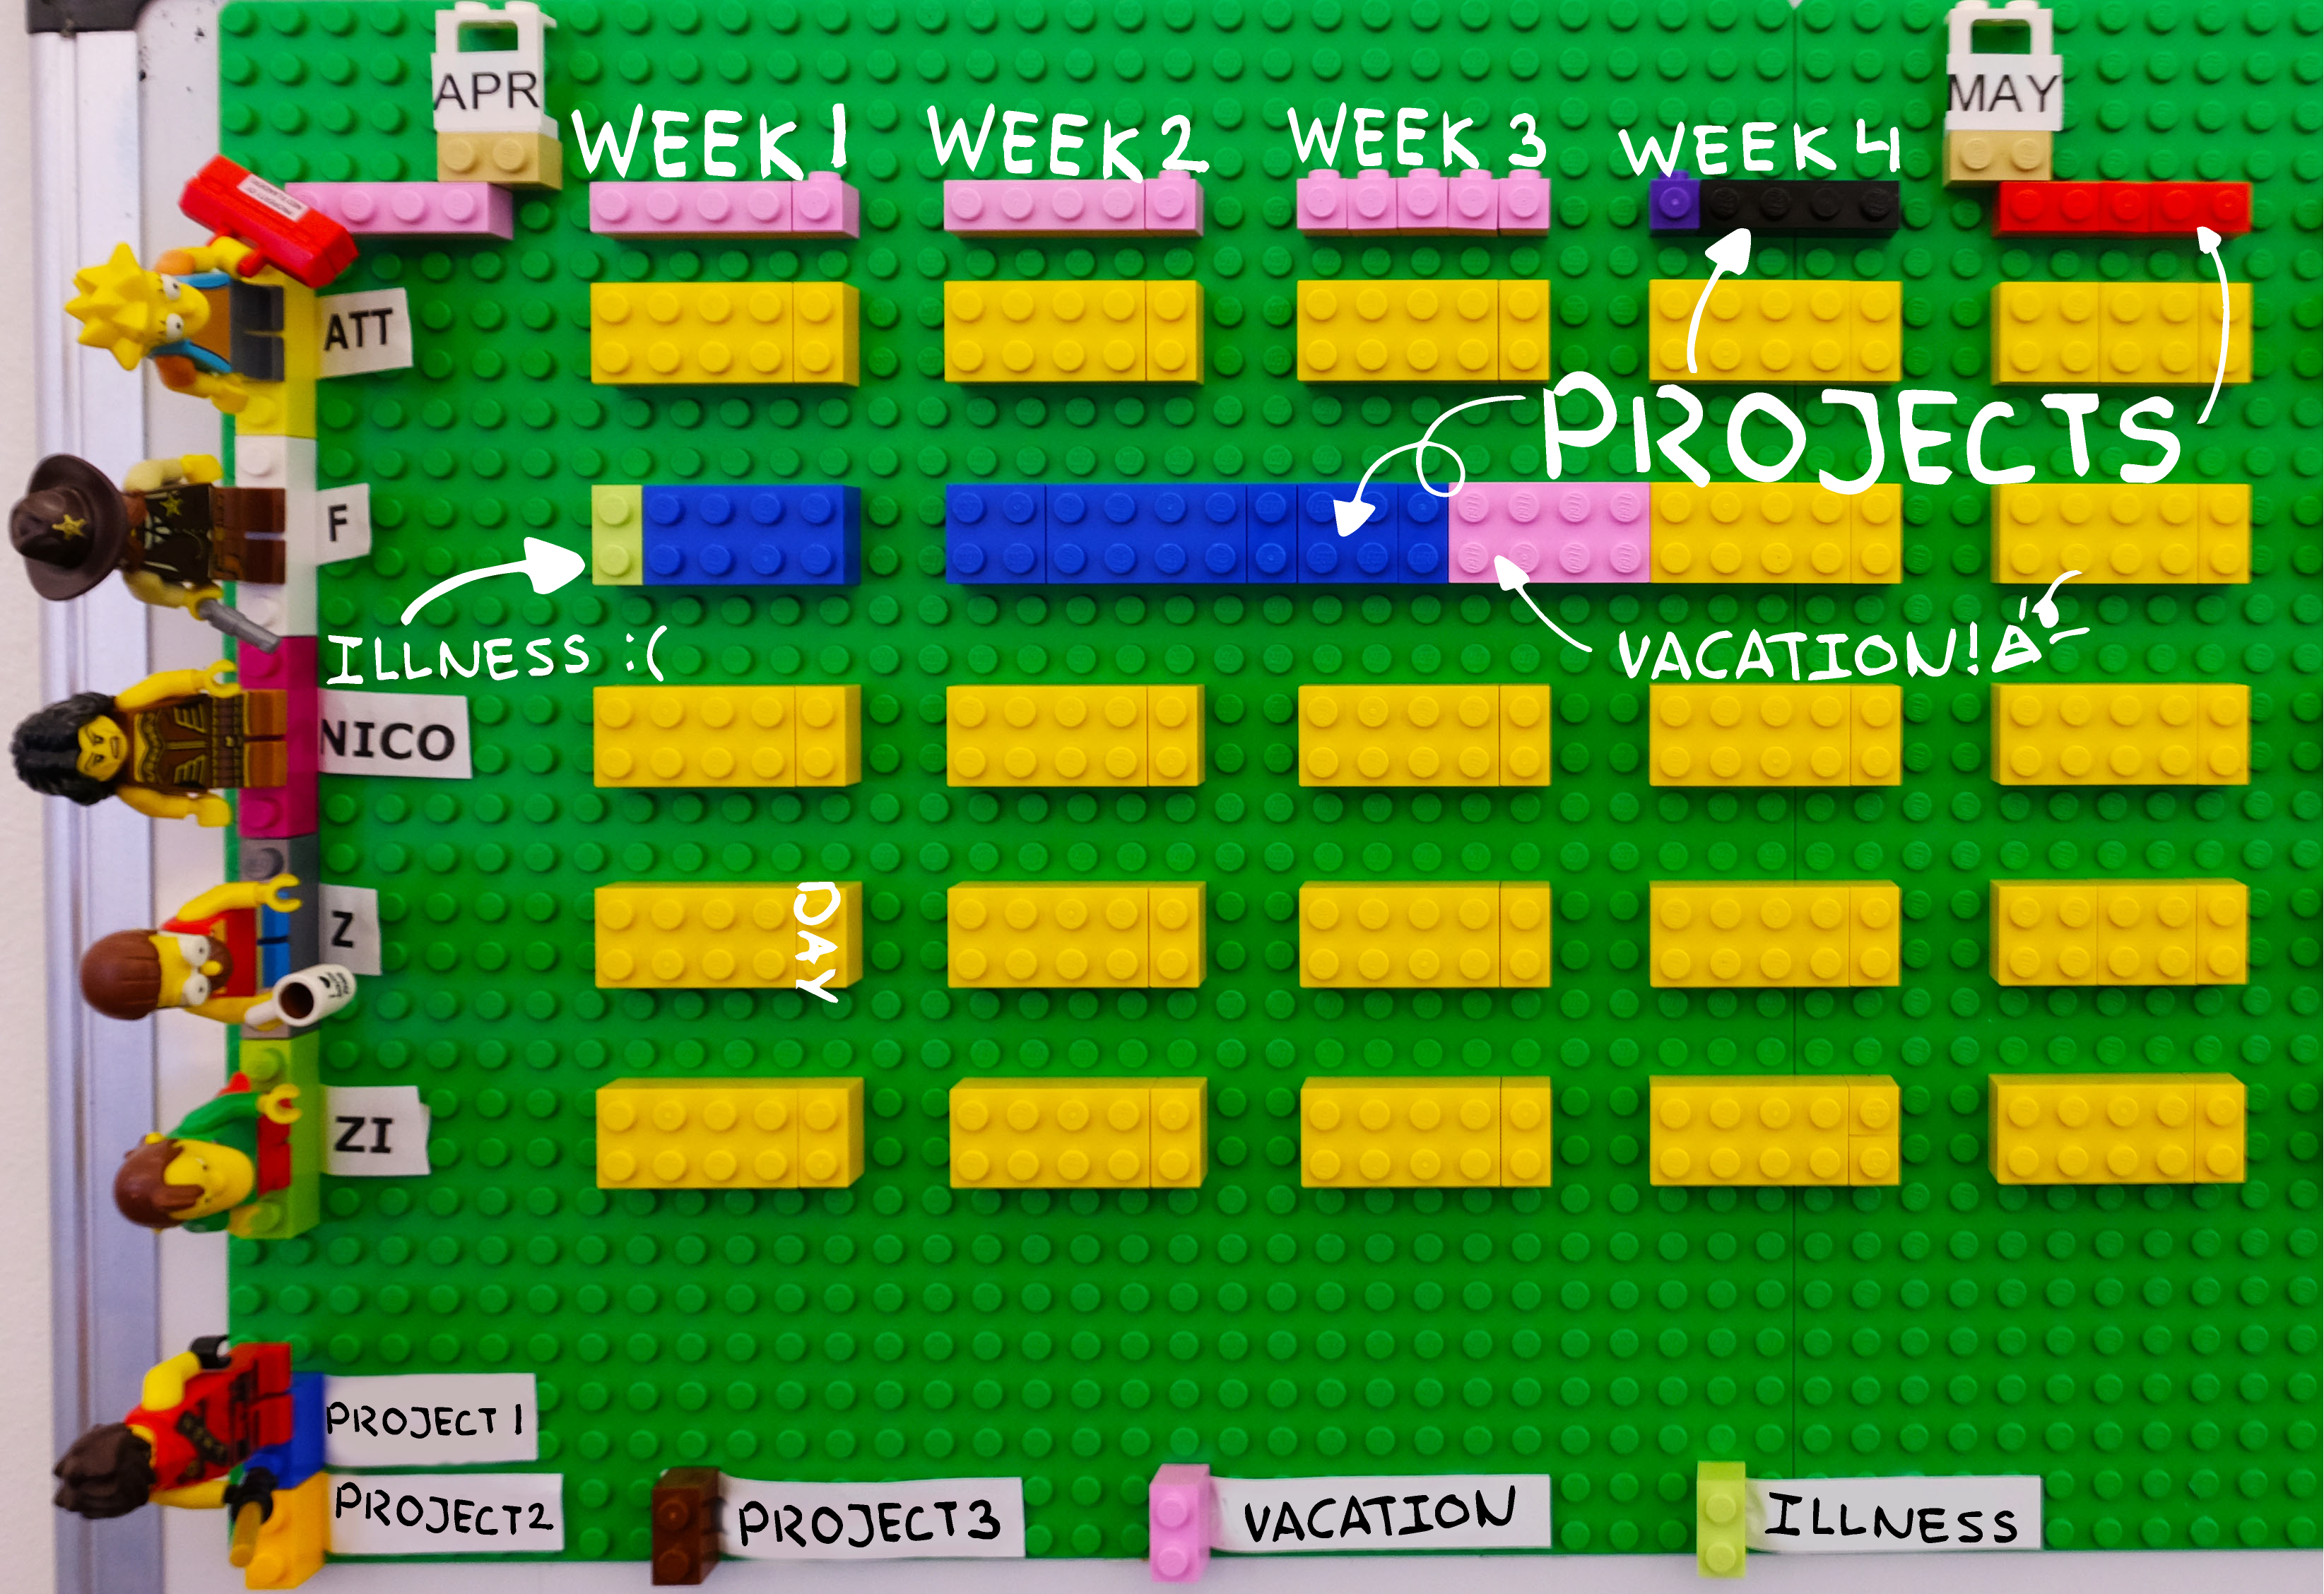 Lego Project Management the Danish Way - The Pulilab Team